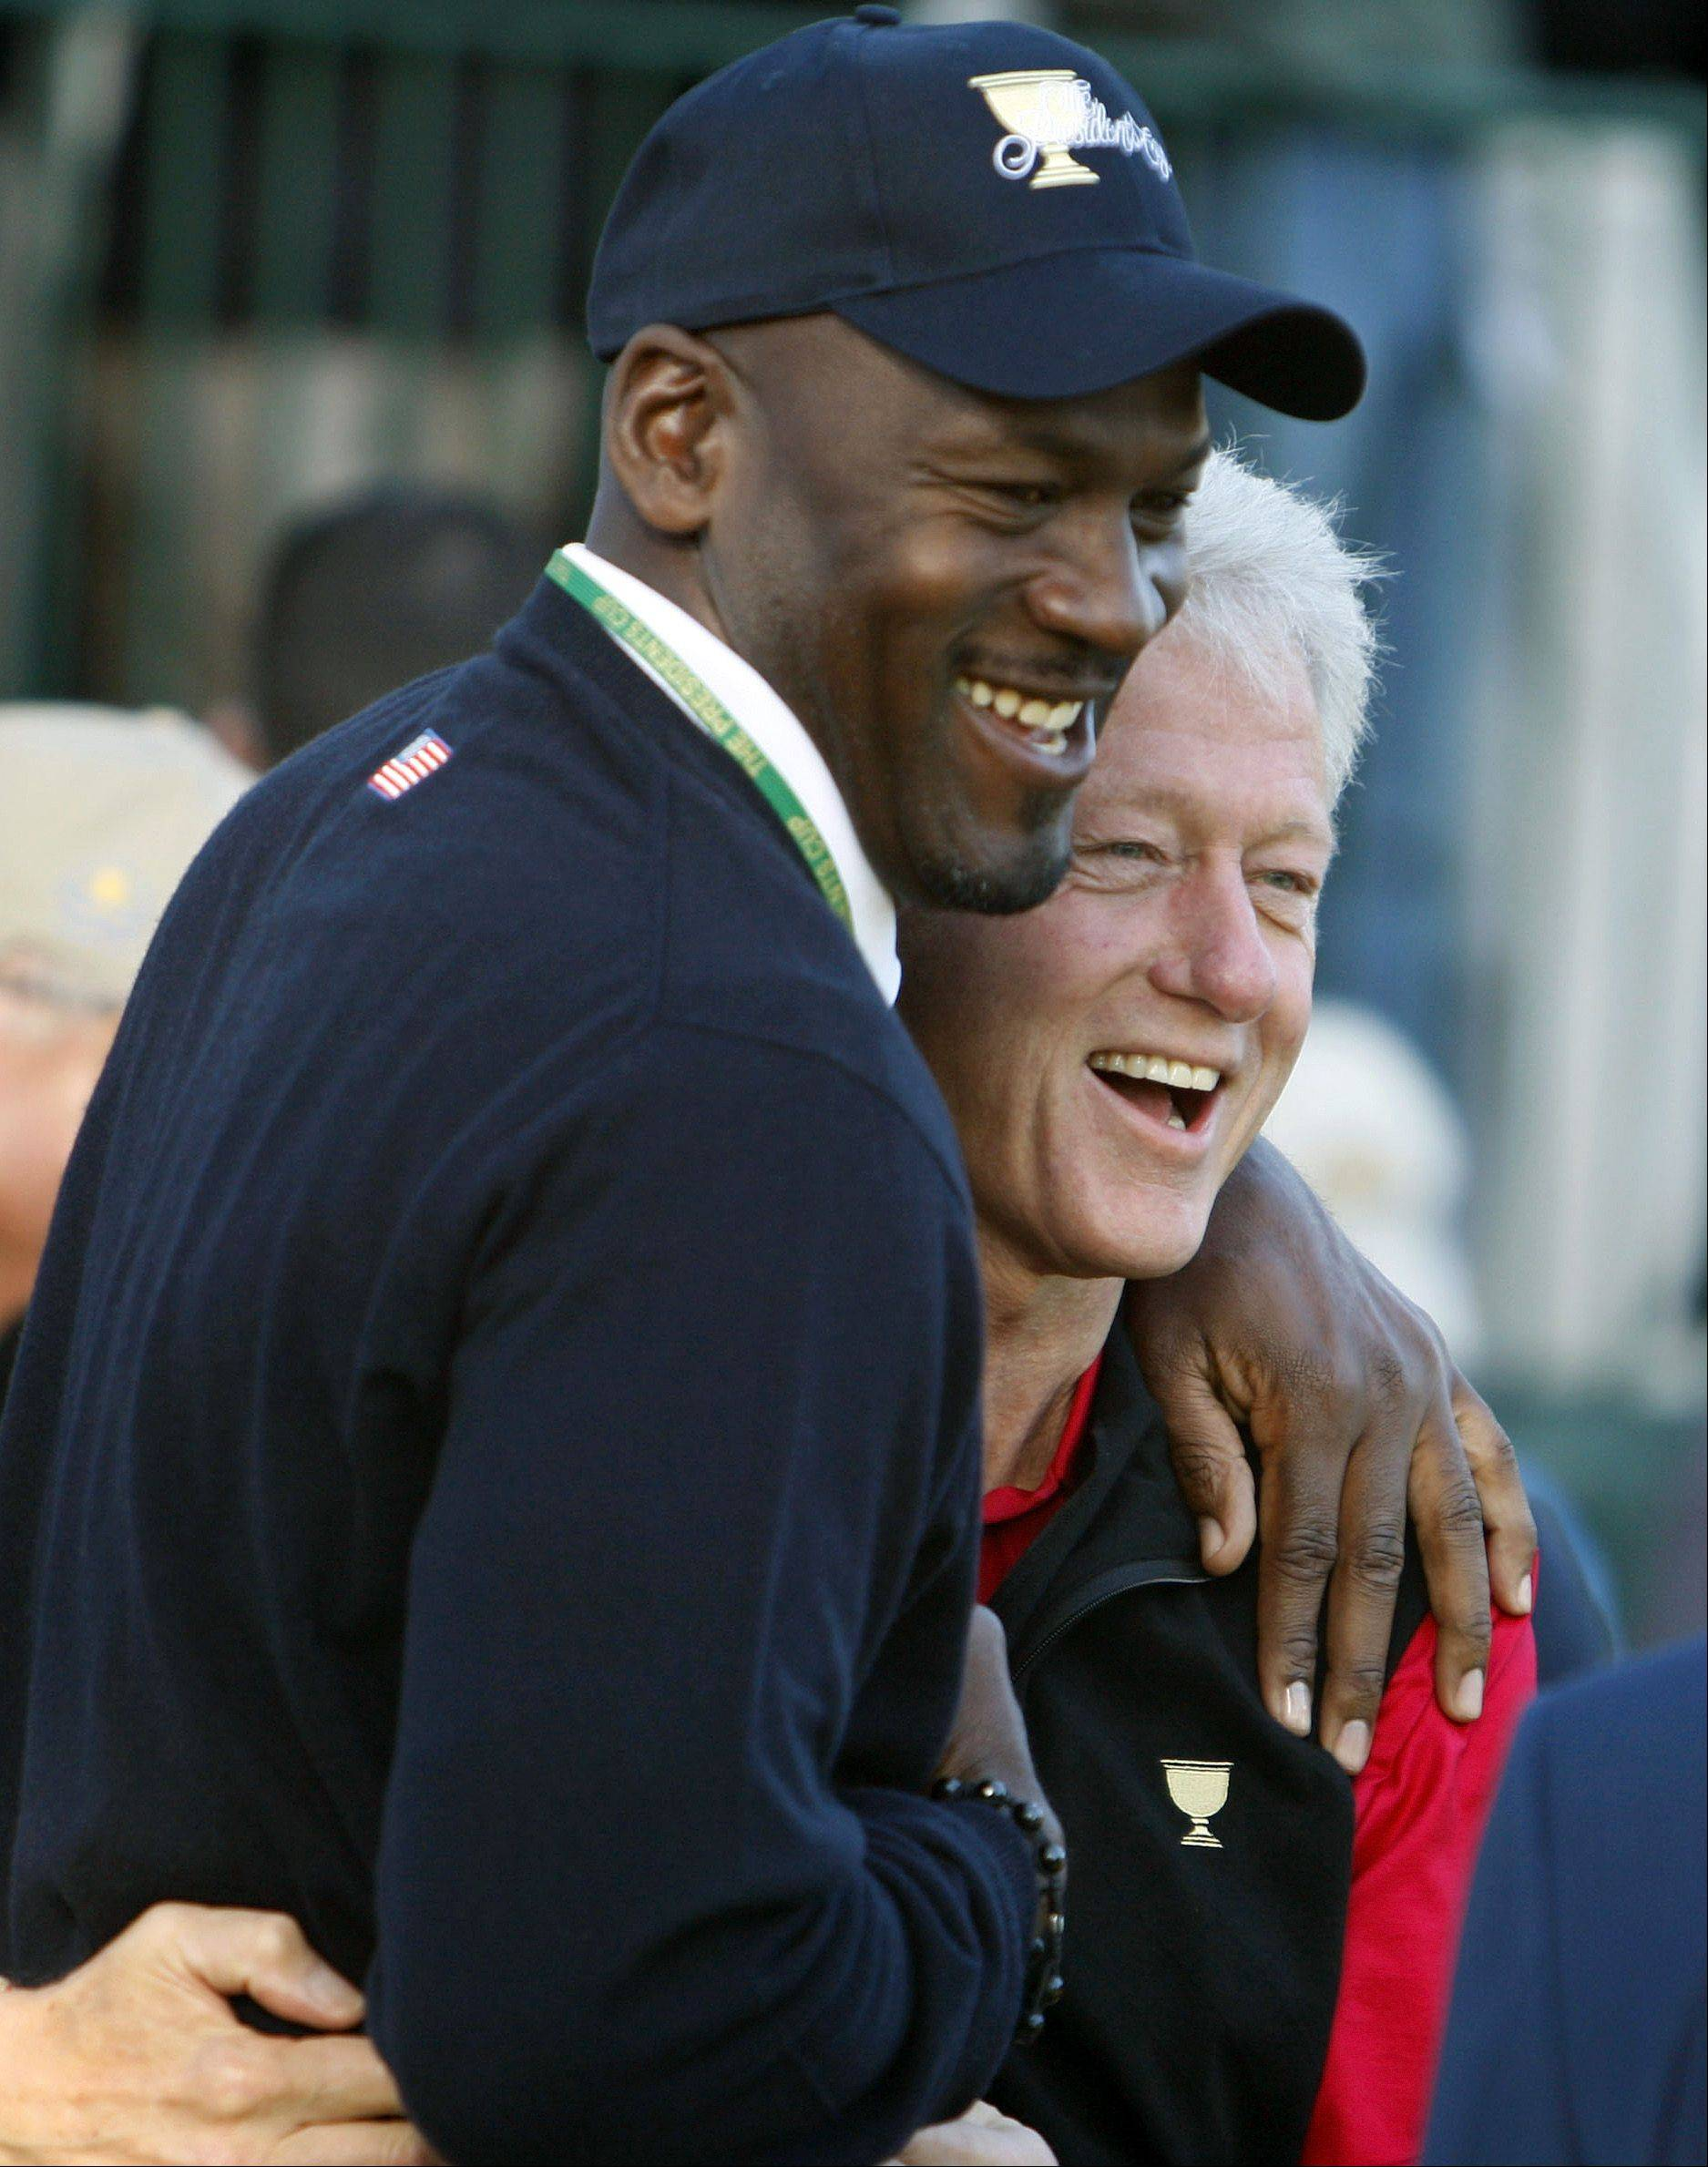 Former United States President Bill Clinton, right, jokes with basketball great Michael Jordan during a team photo session for the Presidents Cup golf competition Tuesday, Oct. 6, 2009, in San Francisco. Jordan is on hand as a guest of U.S. captain Fred Couples.